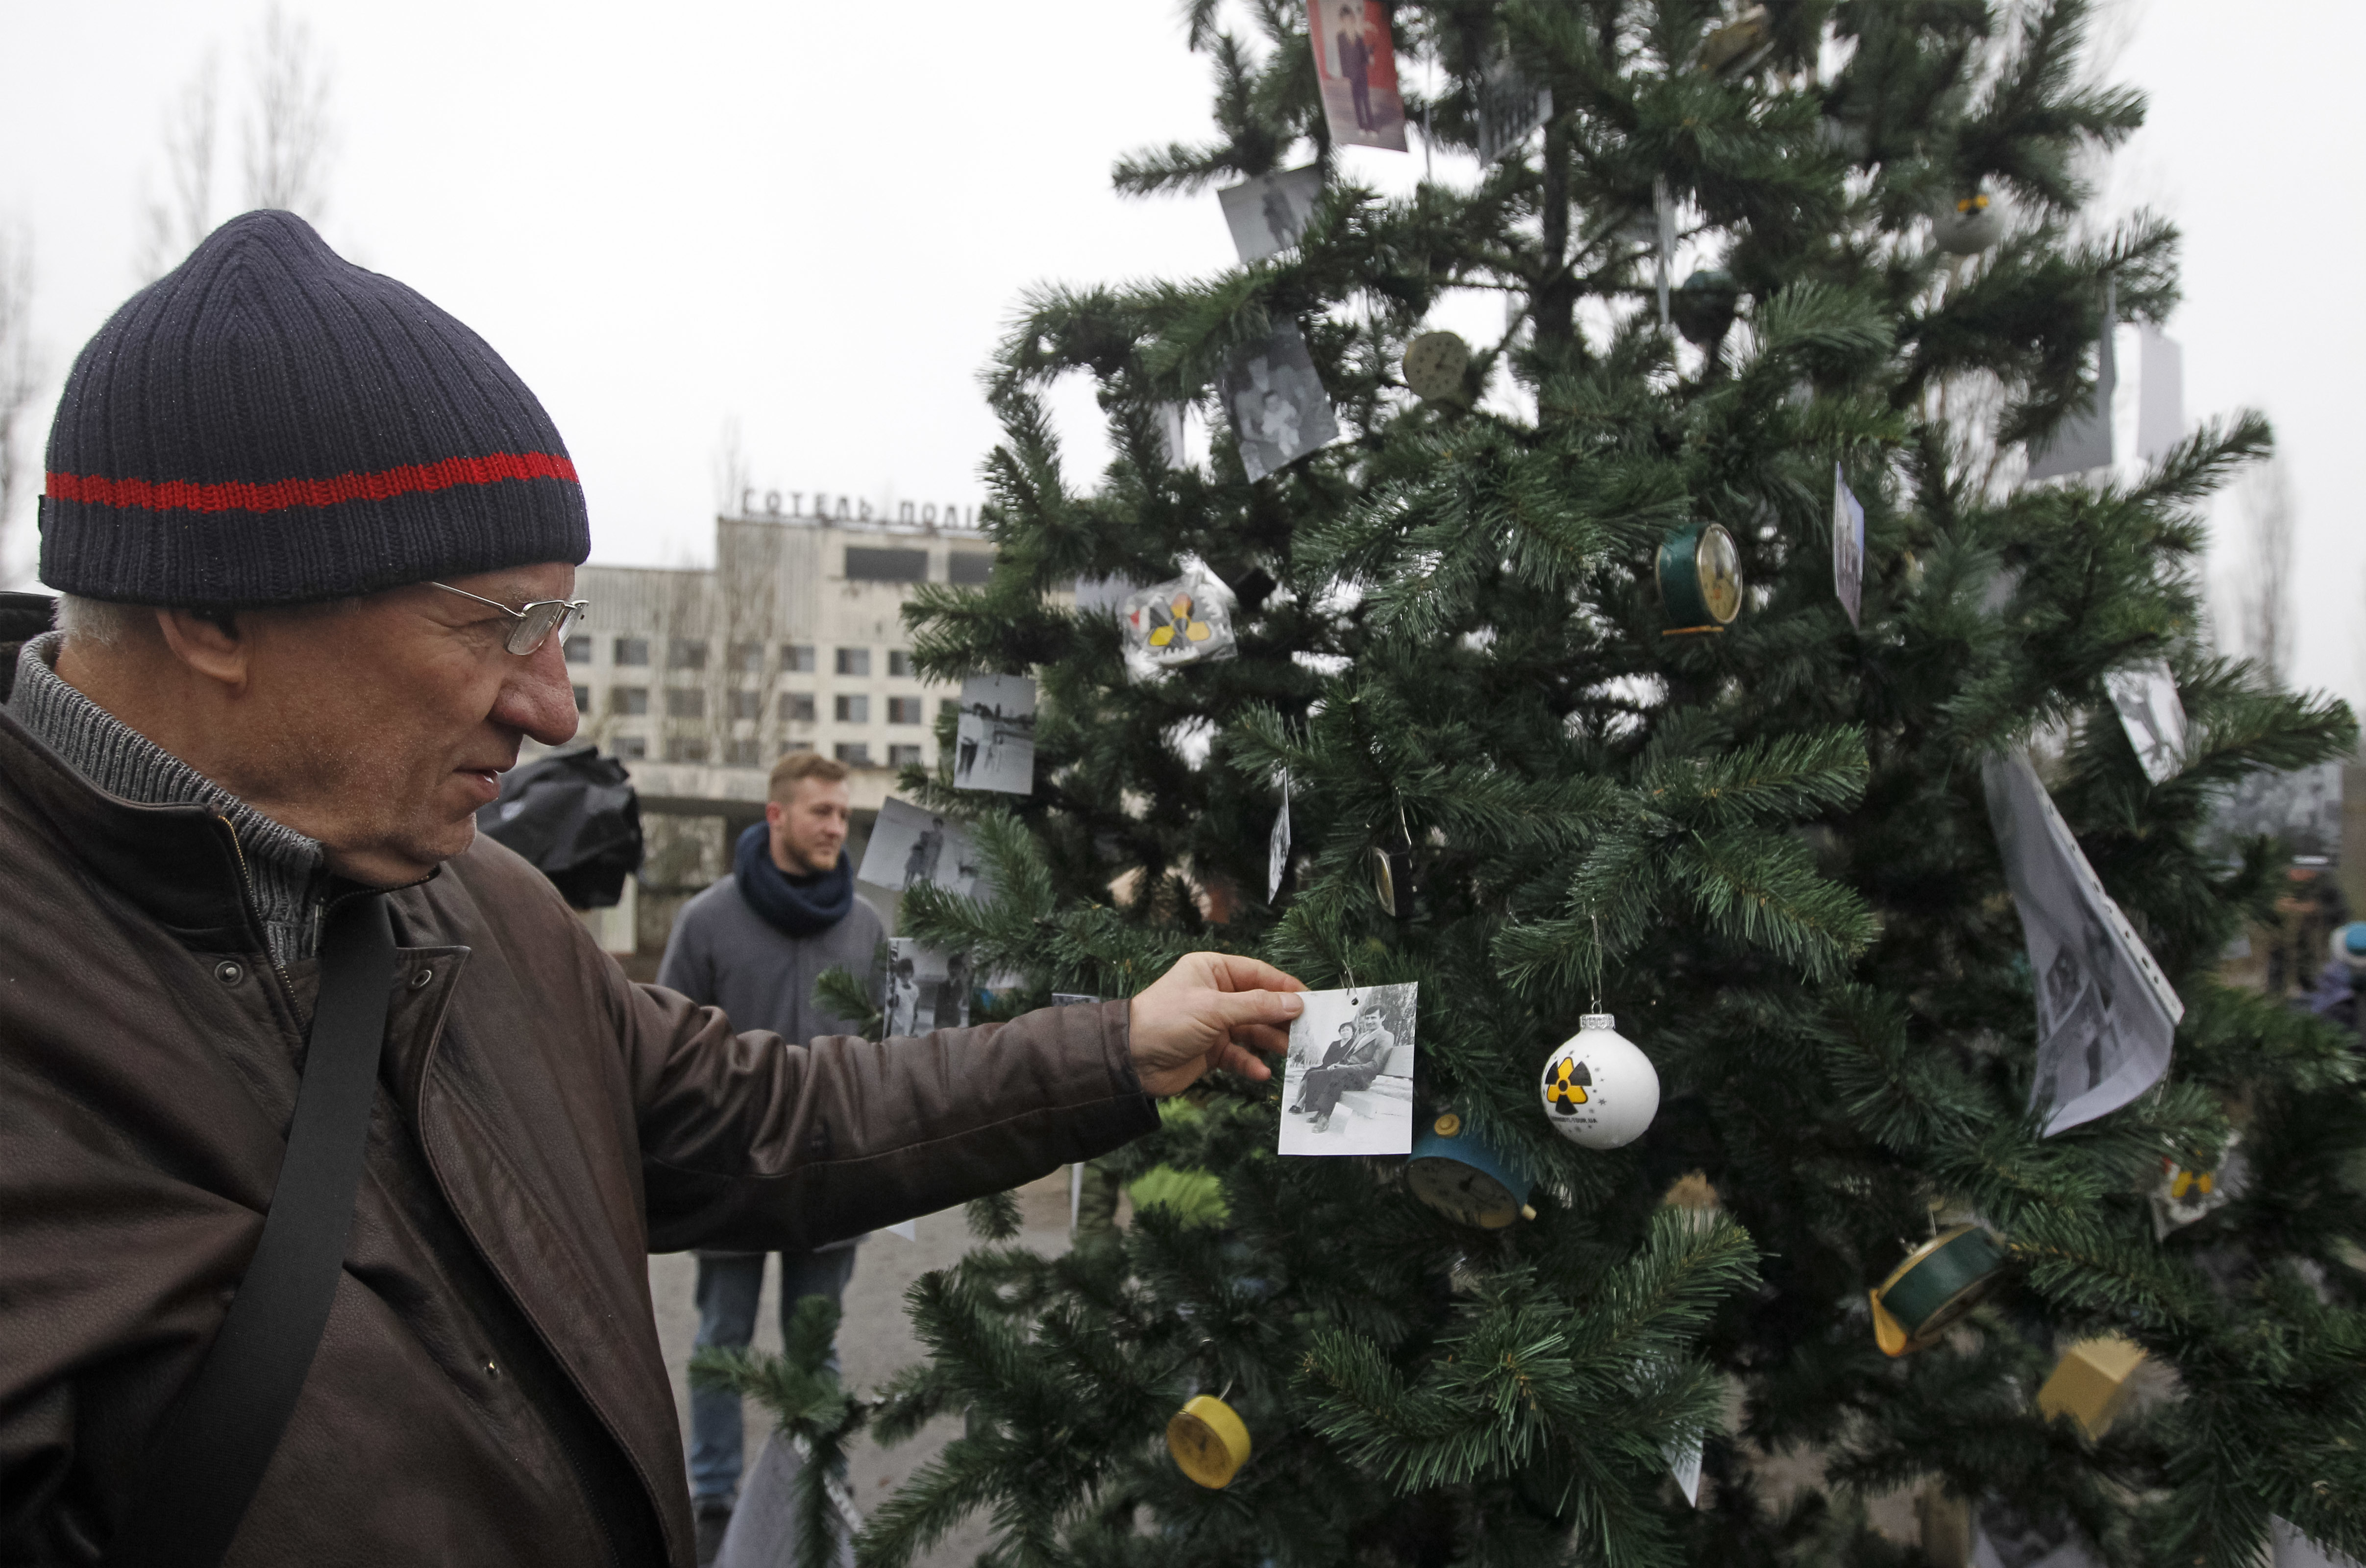 Christmas tree put up in Chernobyl for the first time since nuclear disaster